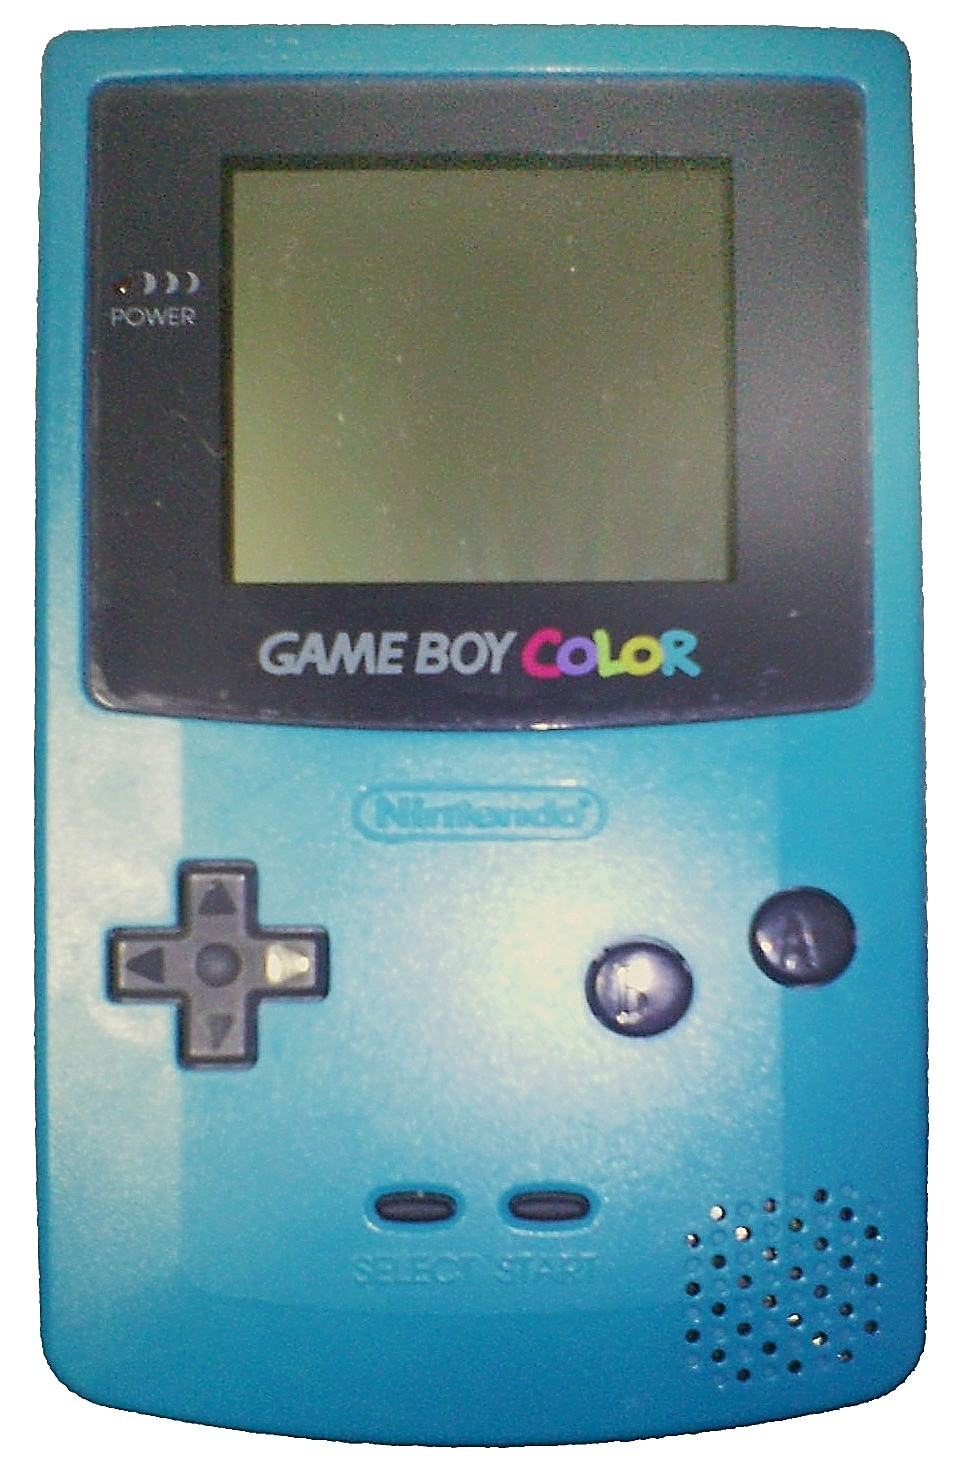 Game Boy Color photography